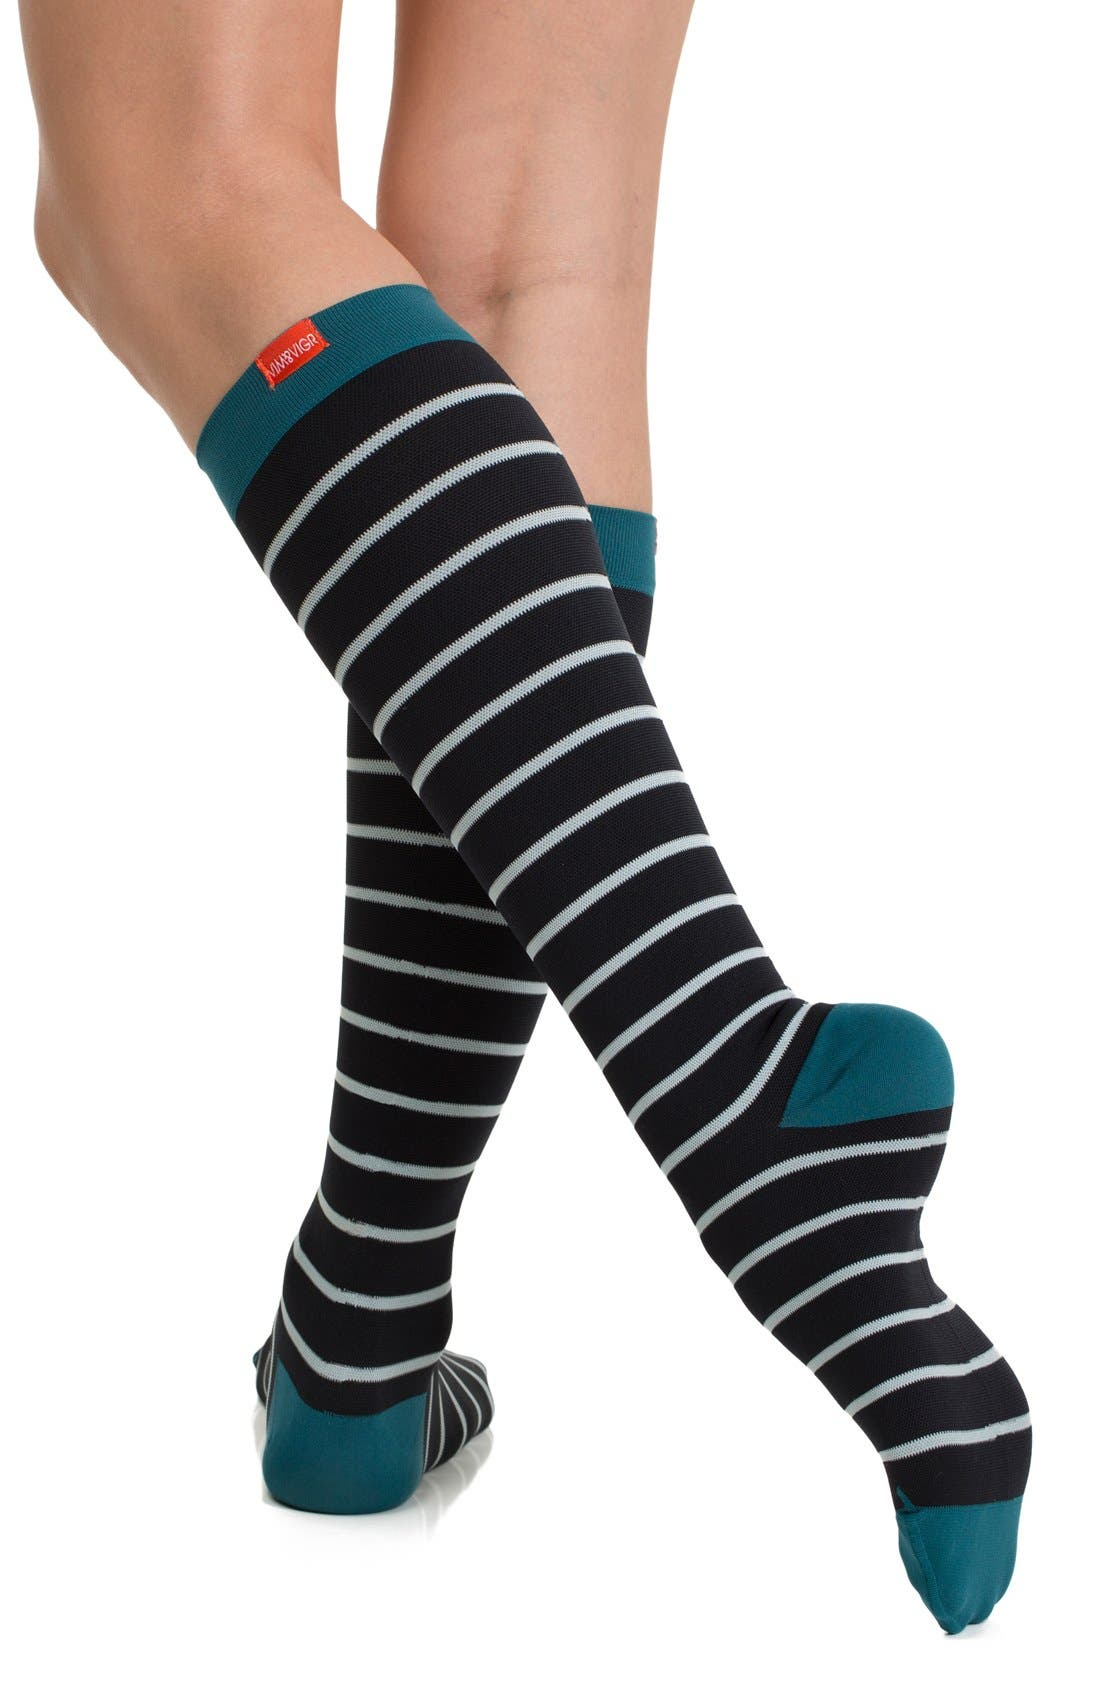 Nautical Stripe Graduated Compression Trouser Socks,                             Alternate thumbnail 6, color,                             001